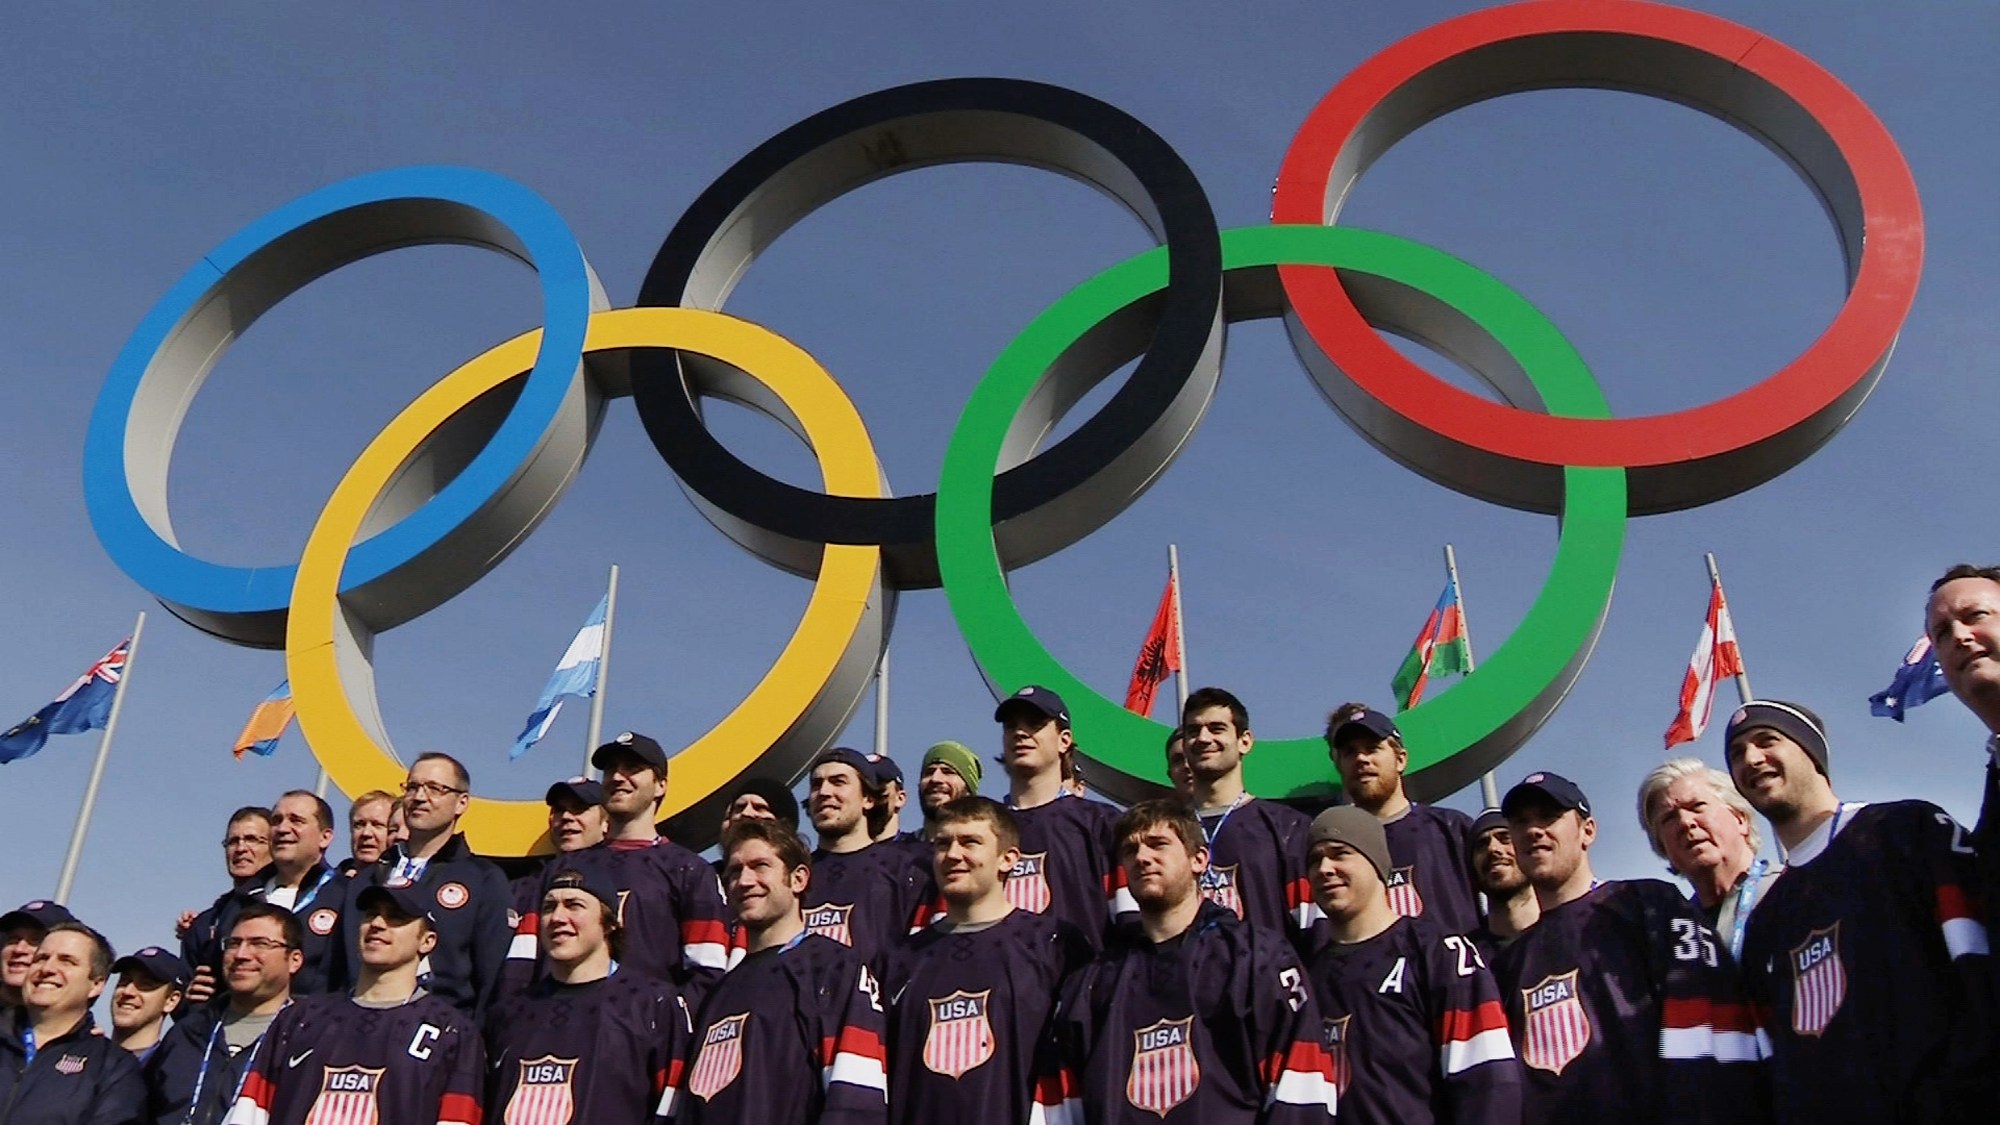 In this still image taken from video, members of the men's ice hockey team from the United States post in front of the Olympic rings in Olympic Park during the 2014 Winter Olympics in Sochi, Russia, on Thursday, Feb. 20, 2014. The U.S. and Canada will play each other in the semifinal round on Friday, Feb. 21. (AP Photo/Ben Jary)